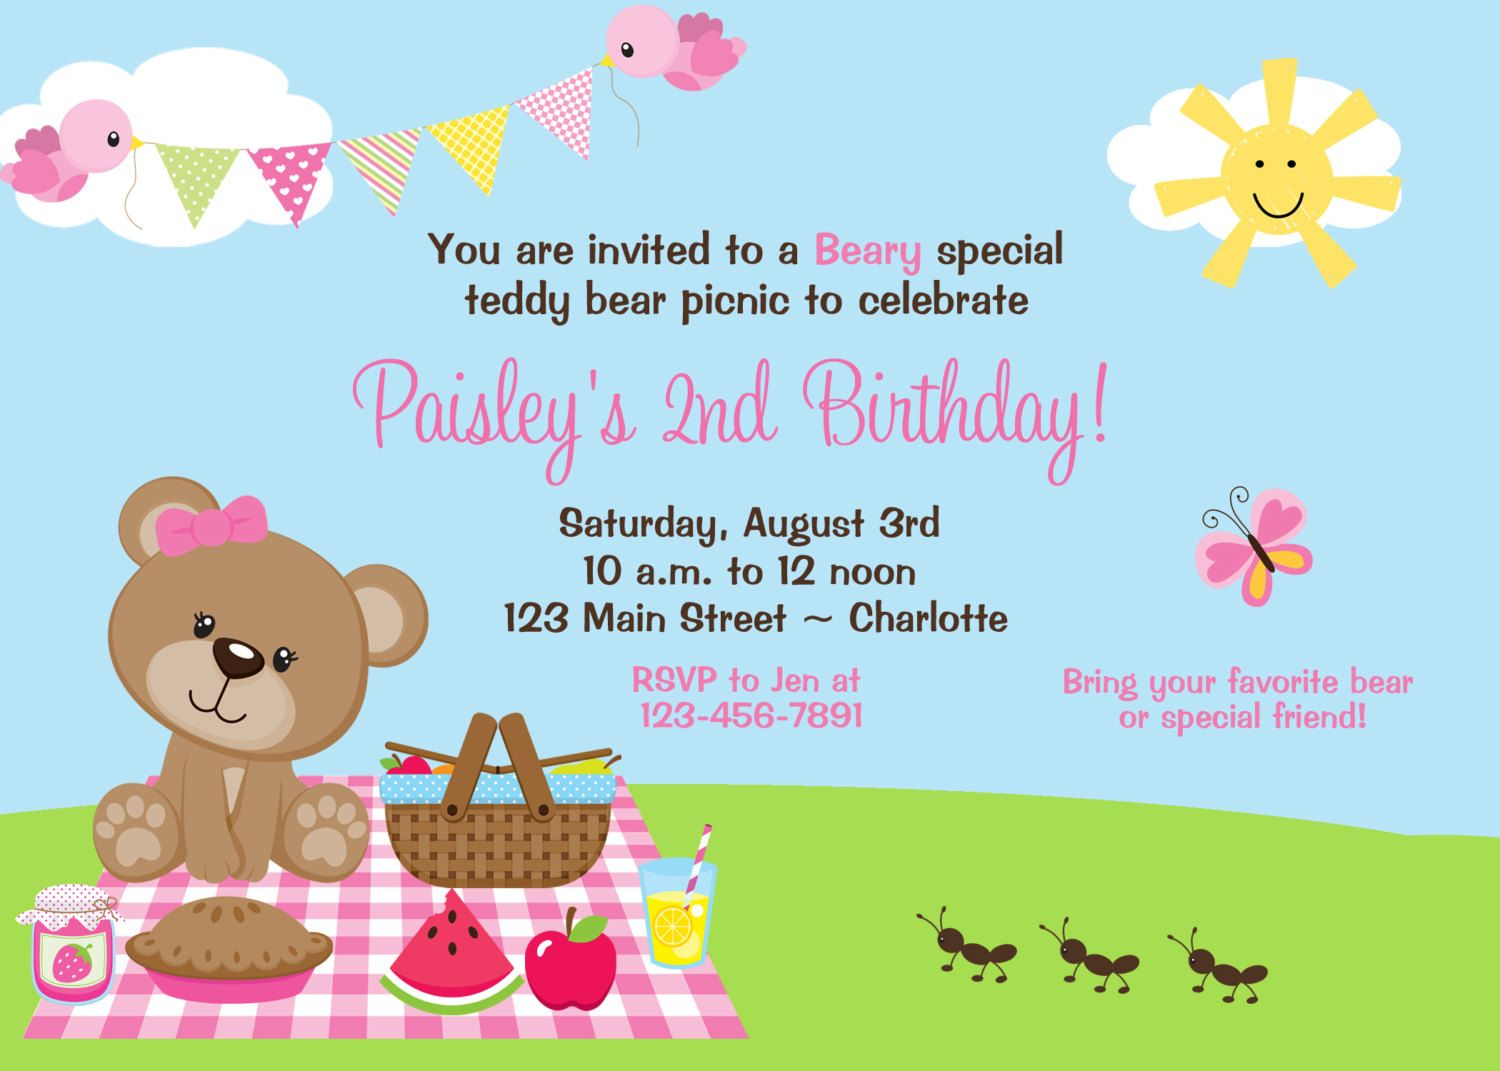 Teddy Bear Picnic Birthday Party Invitation  Teddy Bear Picnic